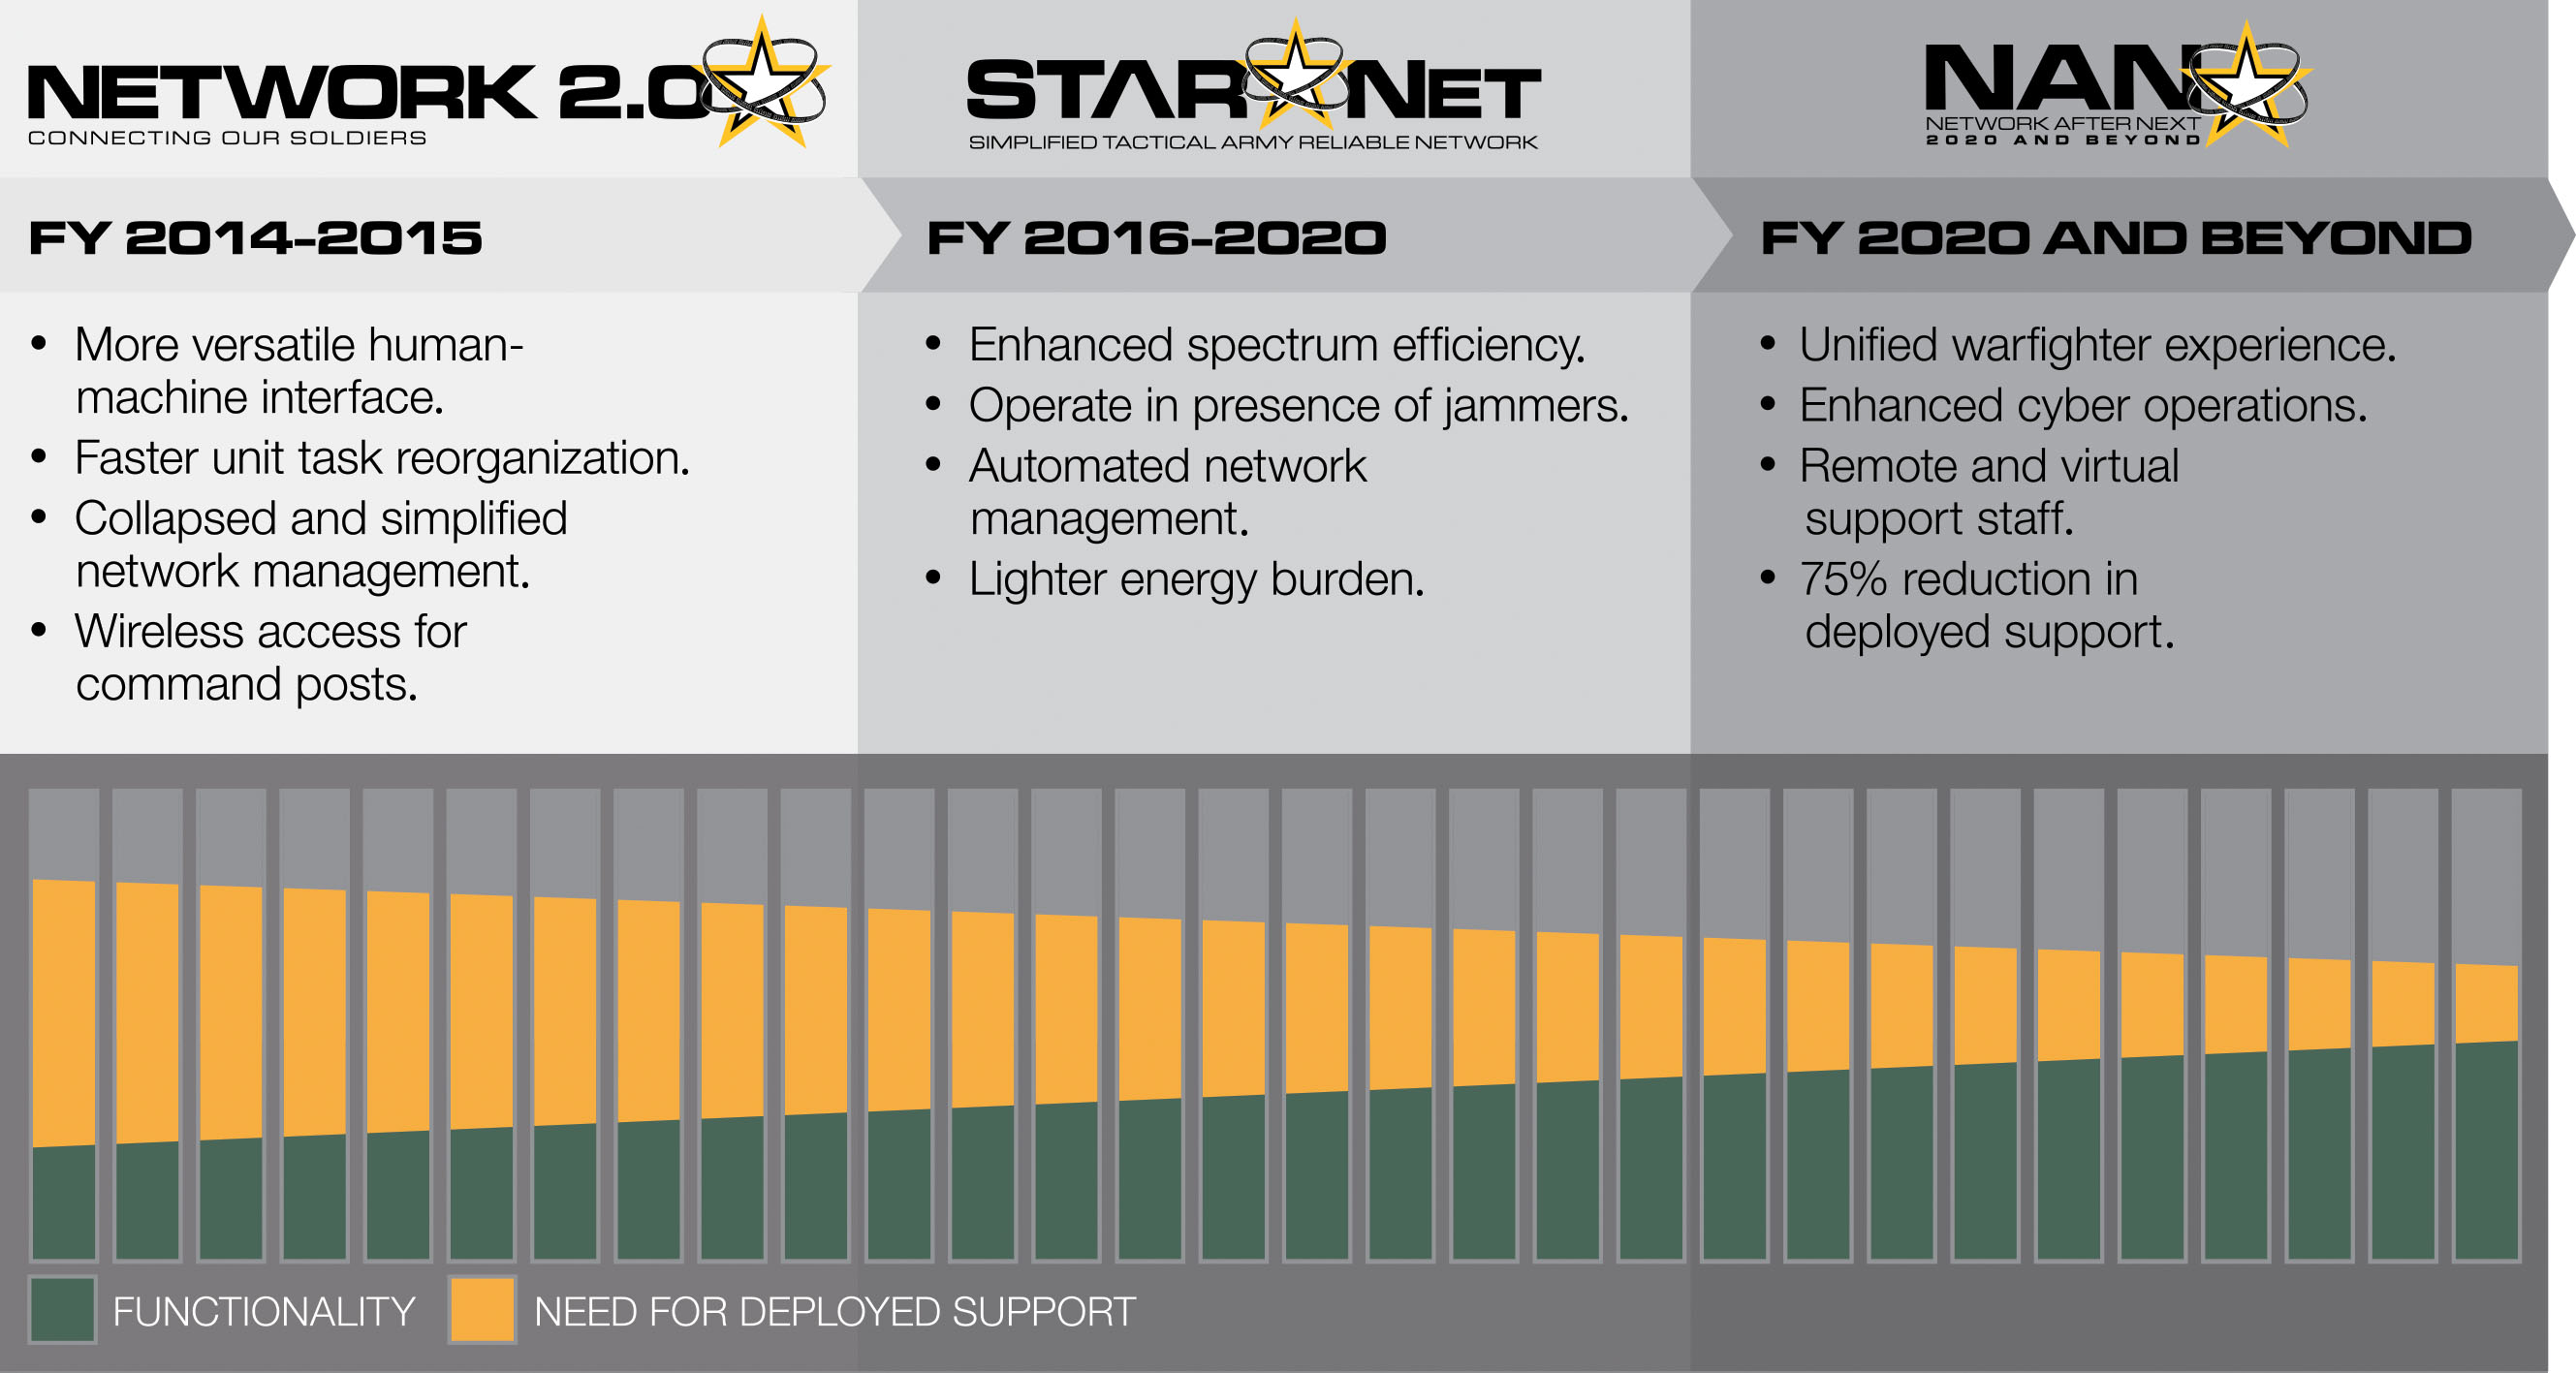 The Army's network modernization road map synchronizes operational priorities for versatility, mobility and security with technology imperatives and program-of-record objectives. It comprises three interconnected phases: Network 2.0, STARNet and NaN. (SOURCE: PEO C3T)